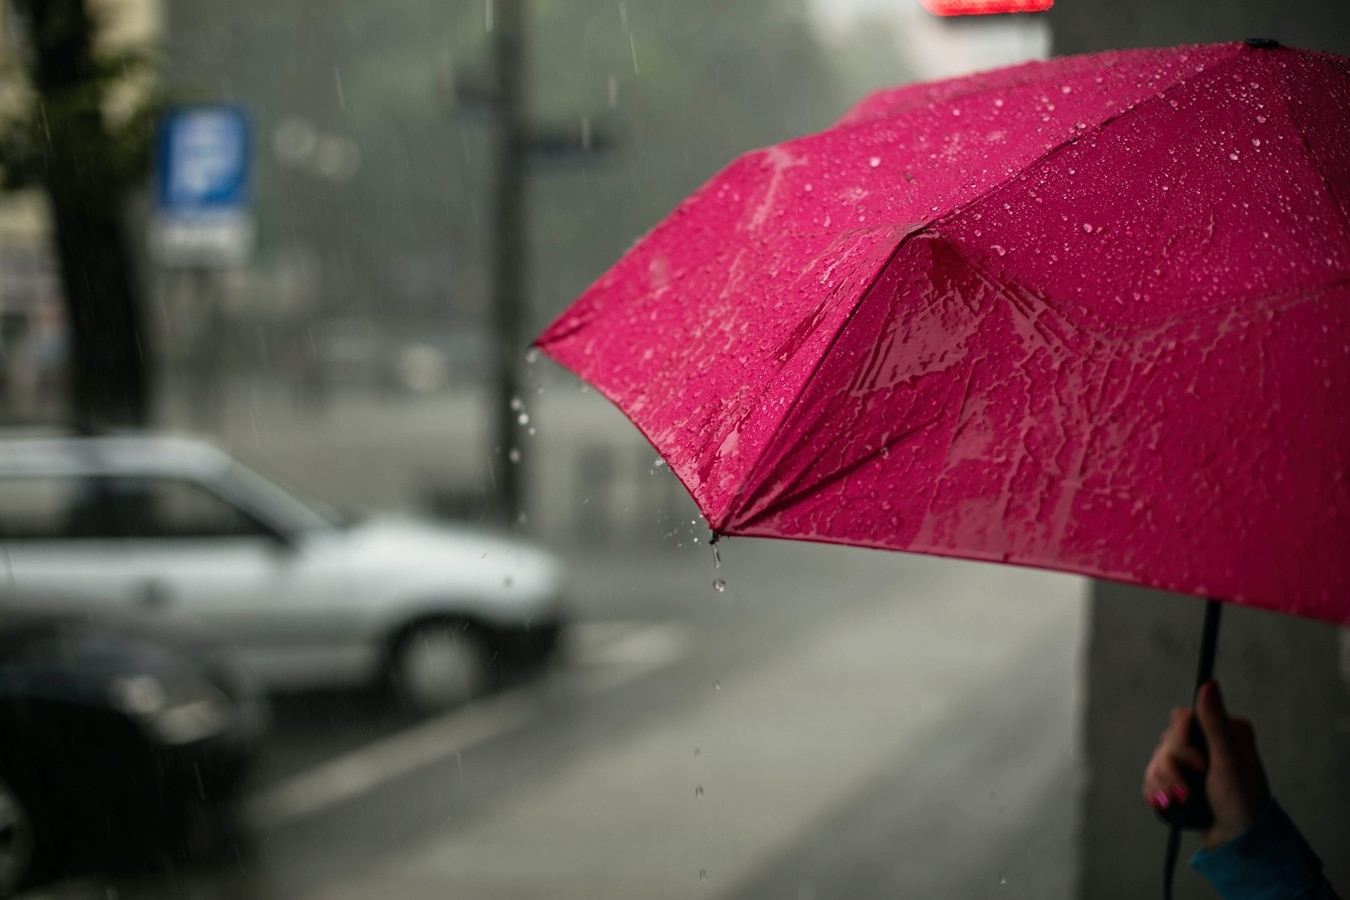 How to follow Monsoon Indian, check the weather forecast for free through these apps – MAUSAM, Skymet Weather and AccuWeather